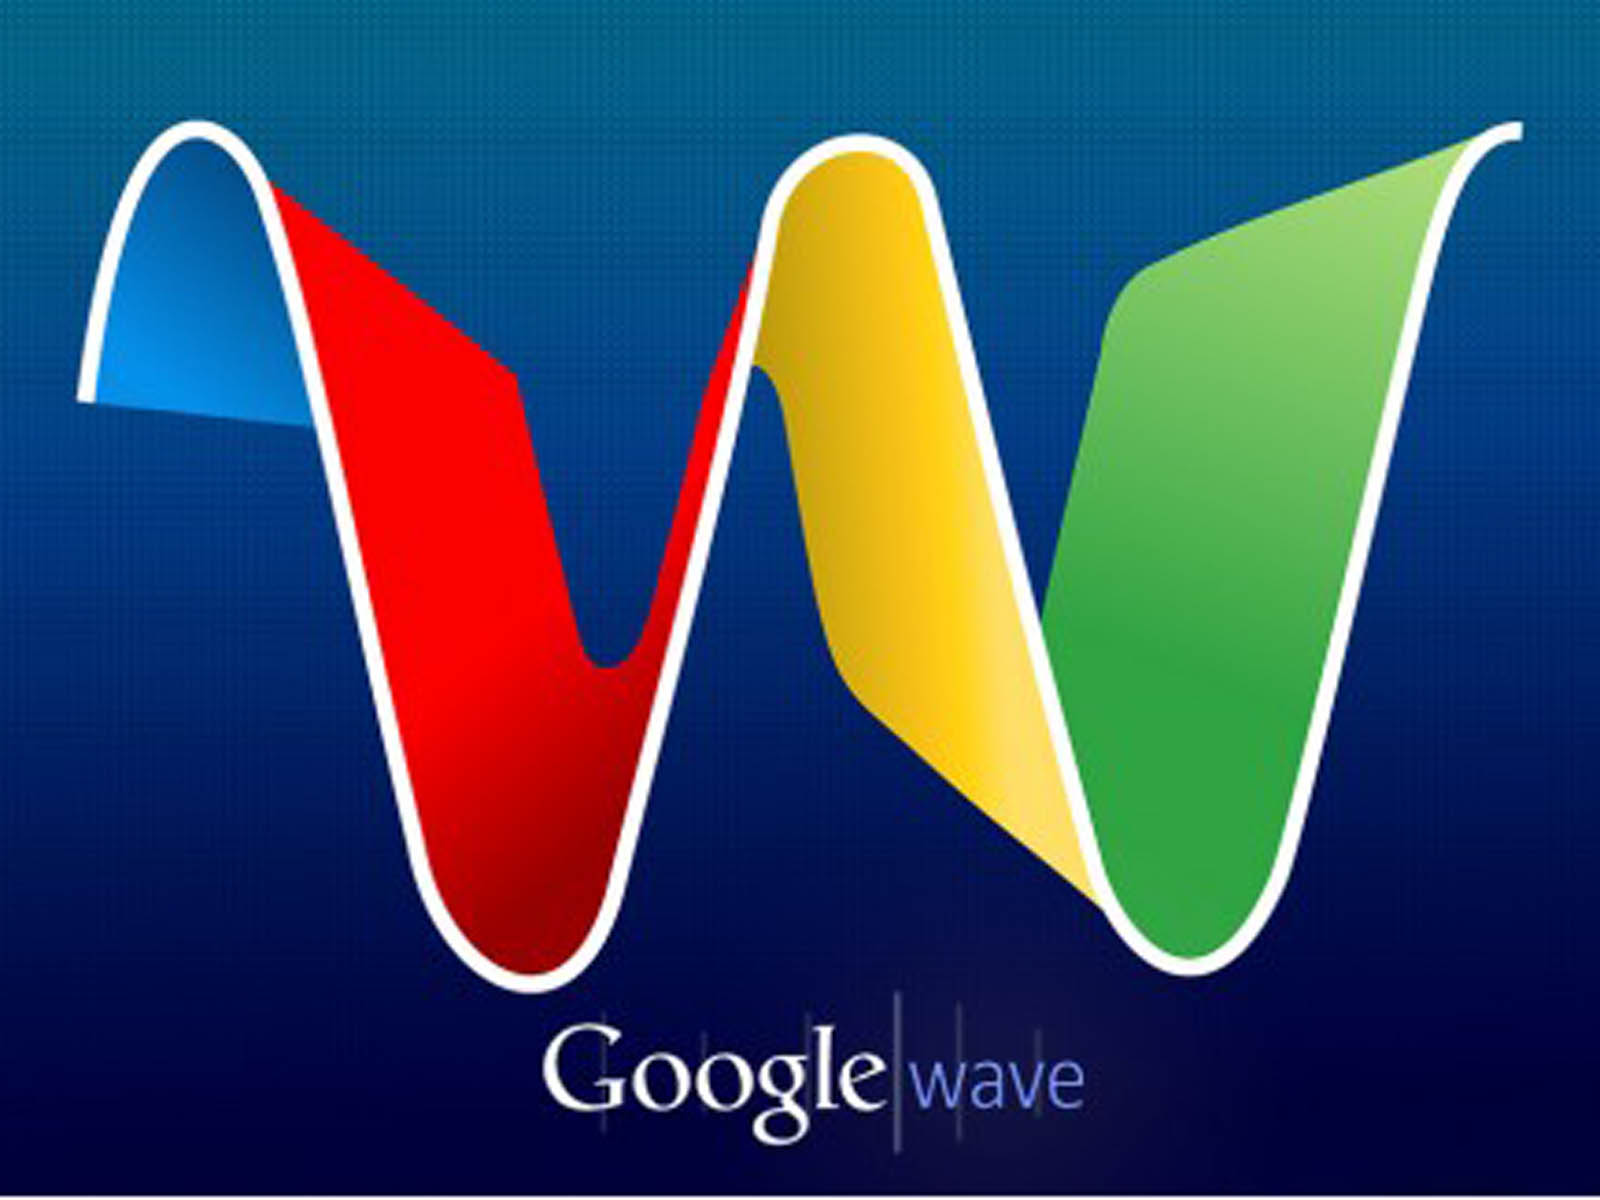 Google Desktop Wallpapers Images Photos Pictures and Backgrounds 1600x1200